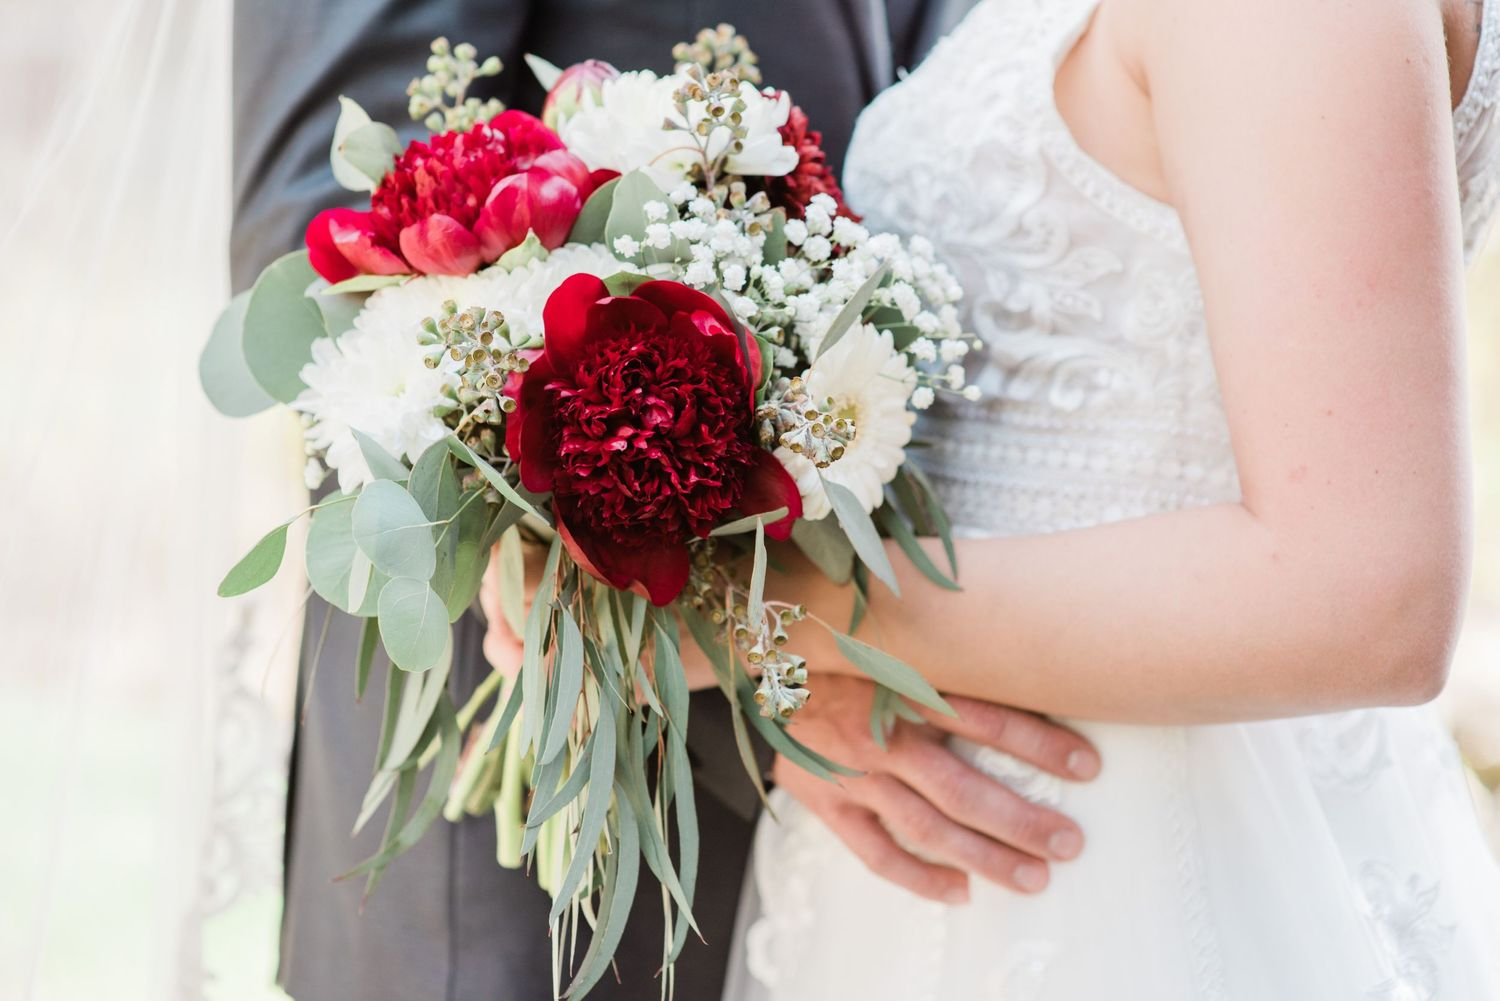 bouquet-red-flowers-small-covid-weddings